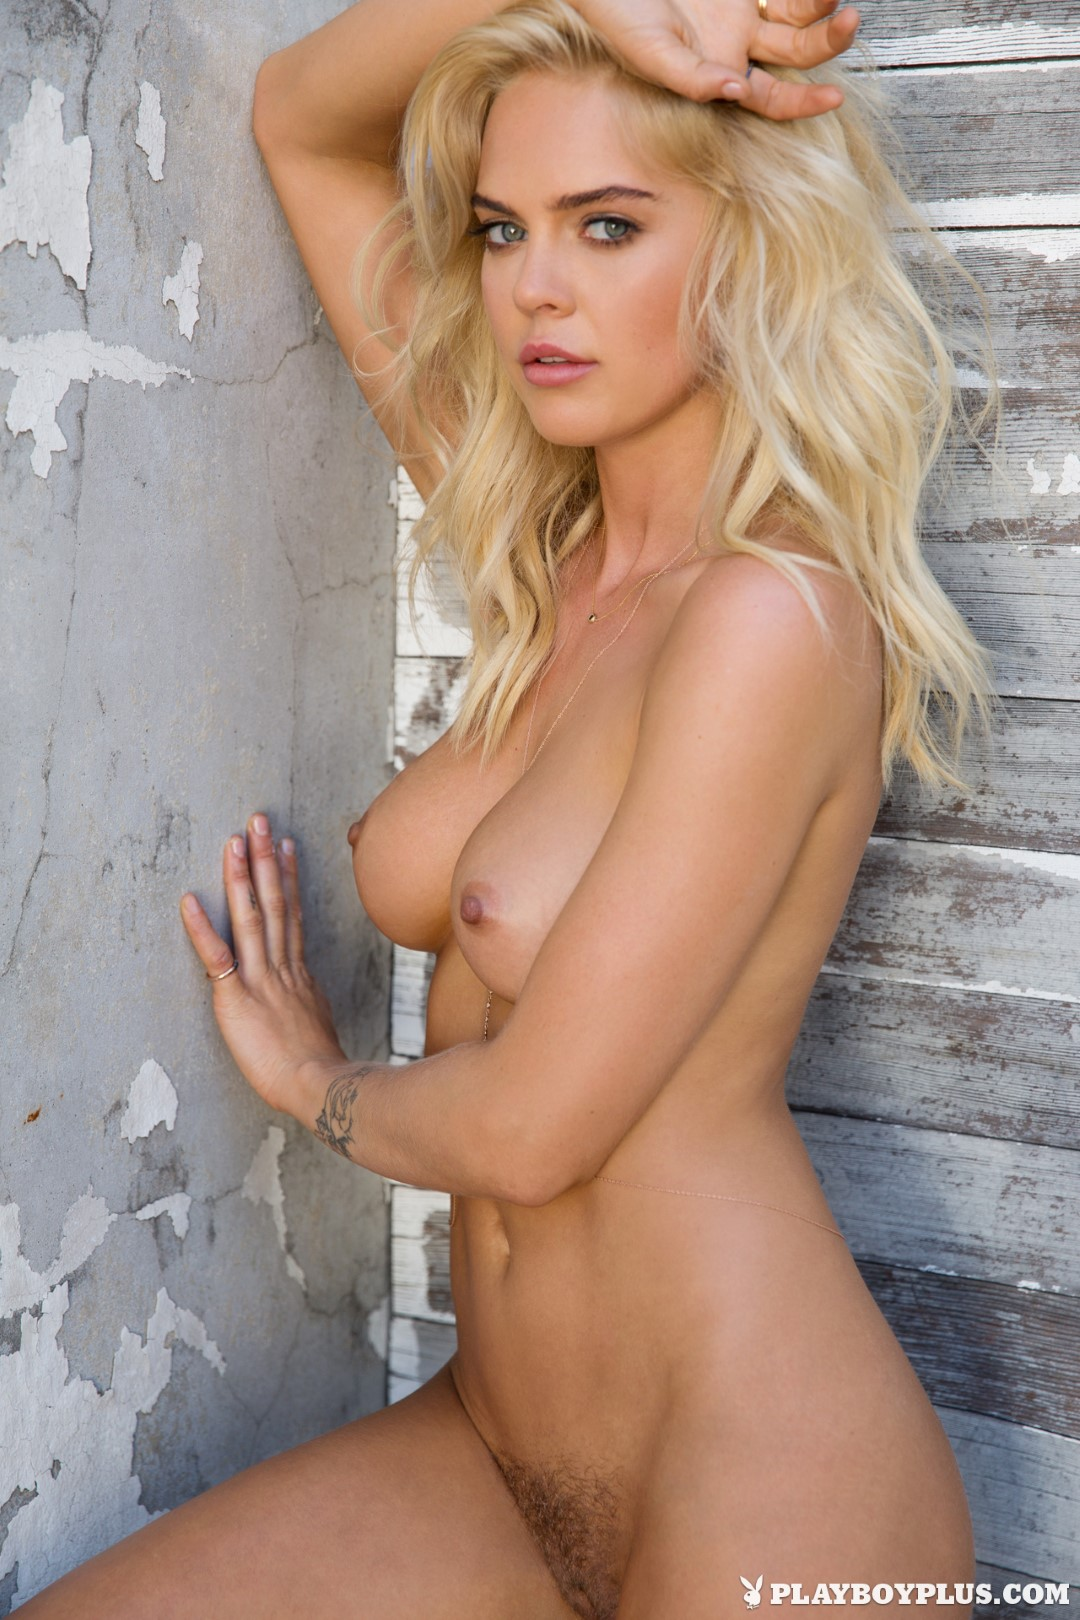 Famous nudes of playboy — photo 3